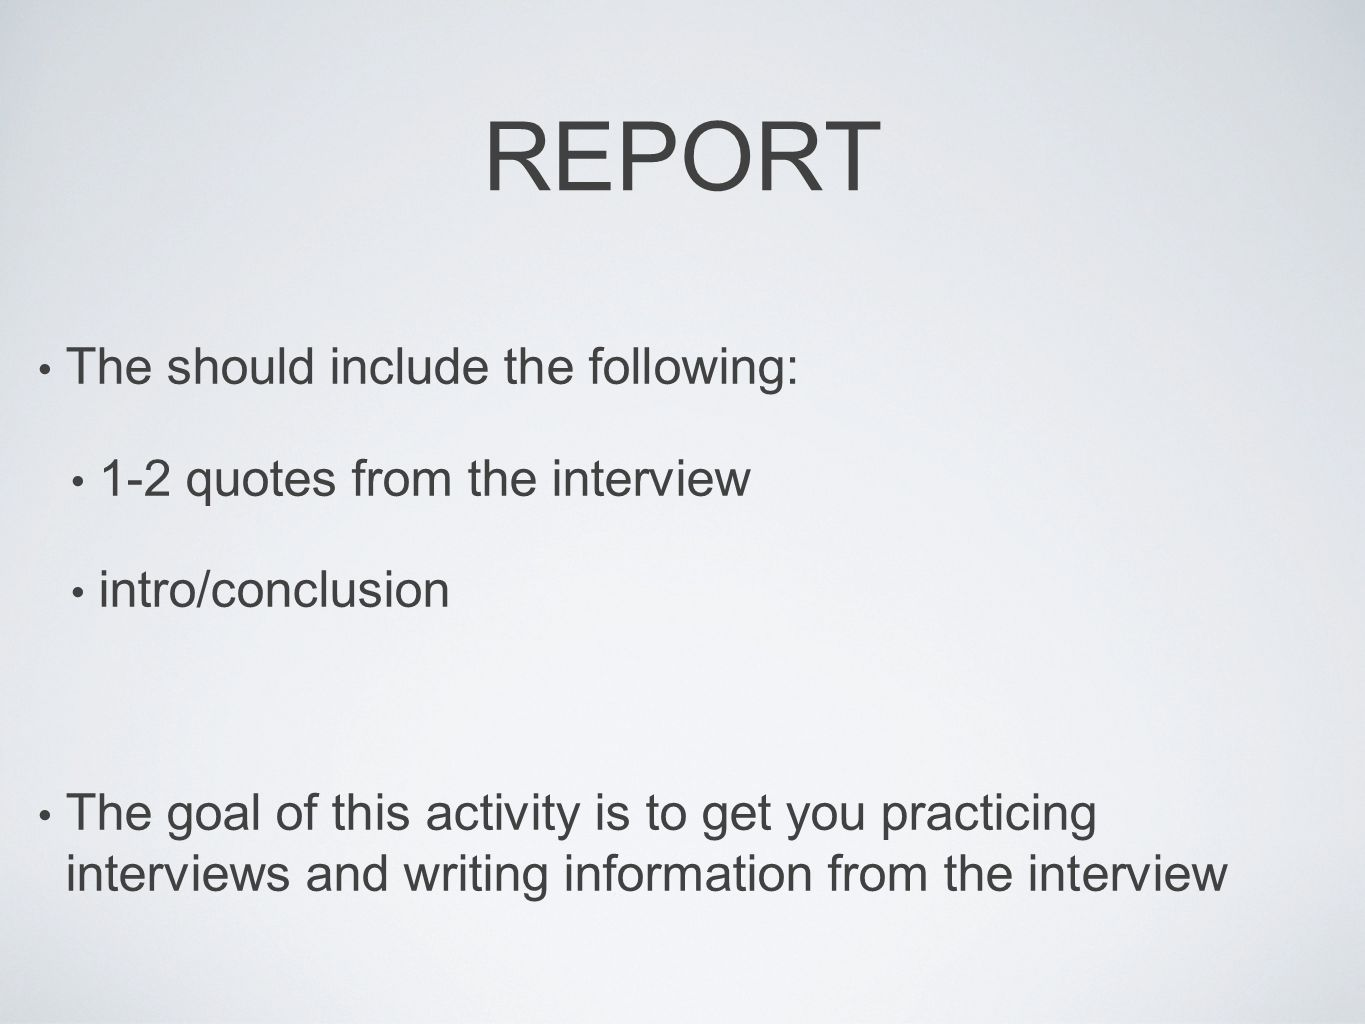 REPORT The should include the following: 1-2 quotes from the interview intro/conclusion The goal of this activity is to get you practicing interviews